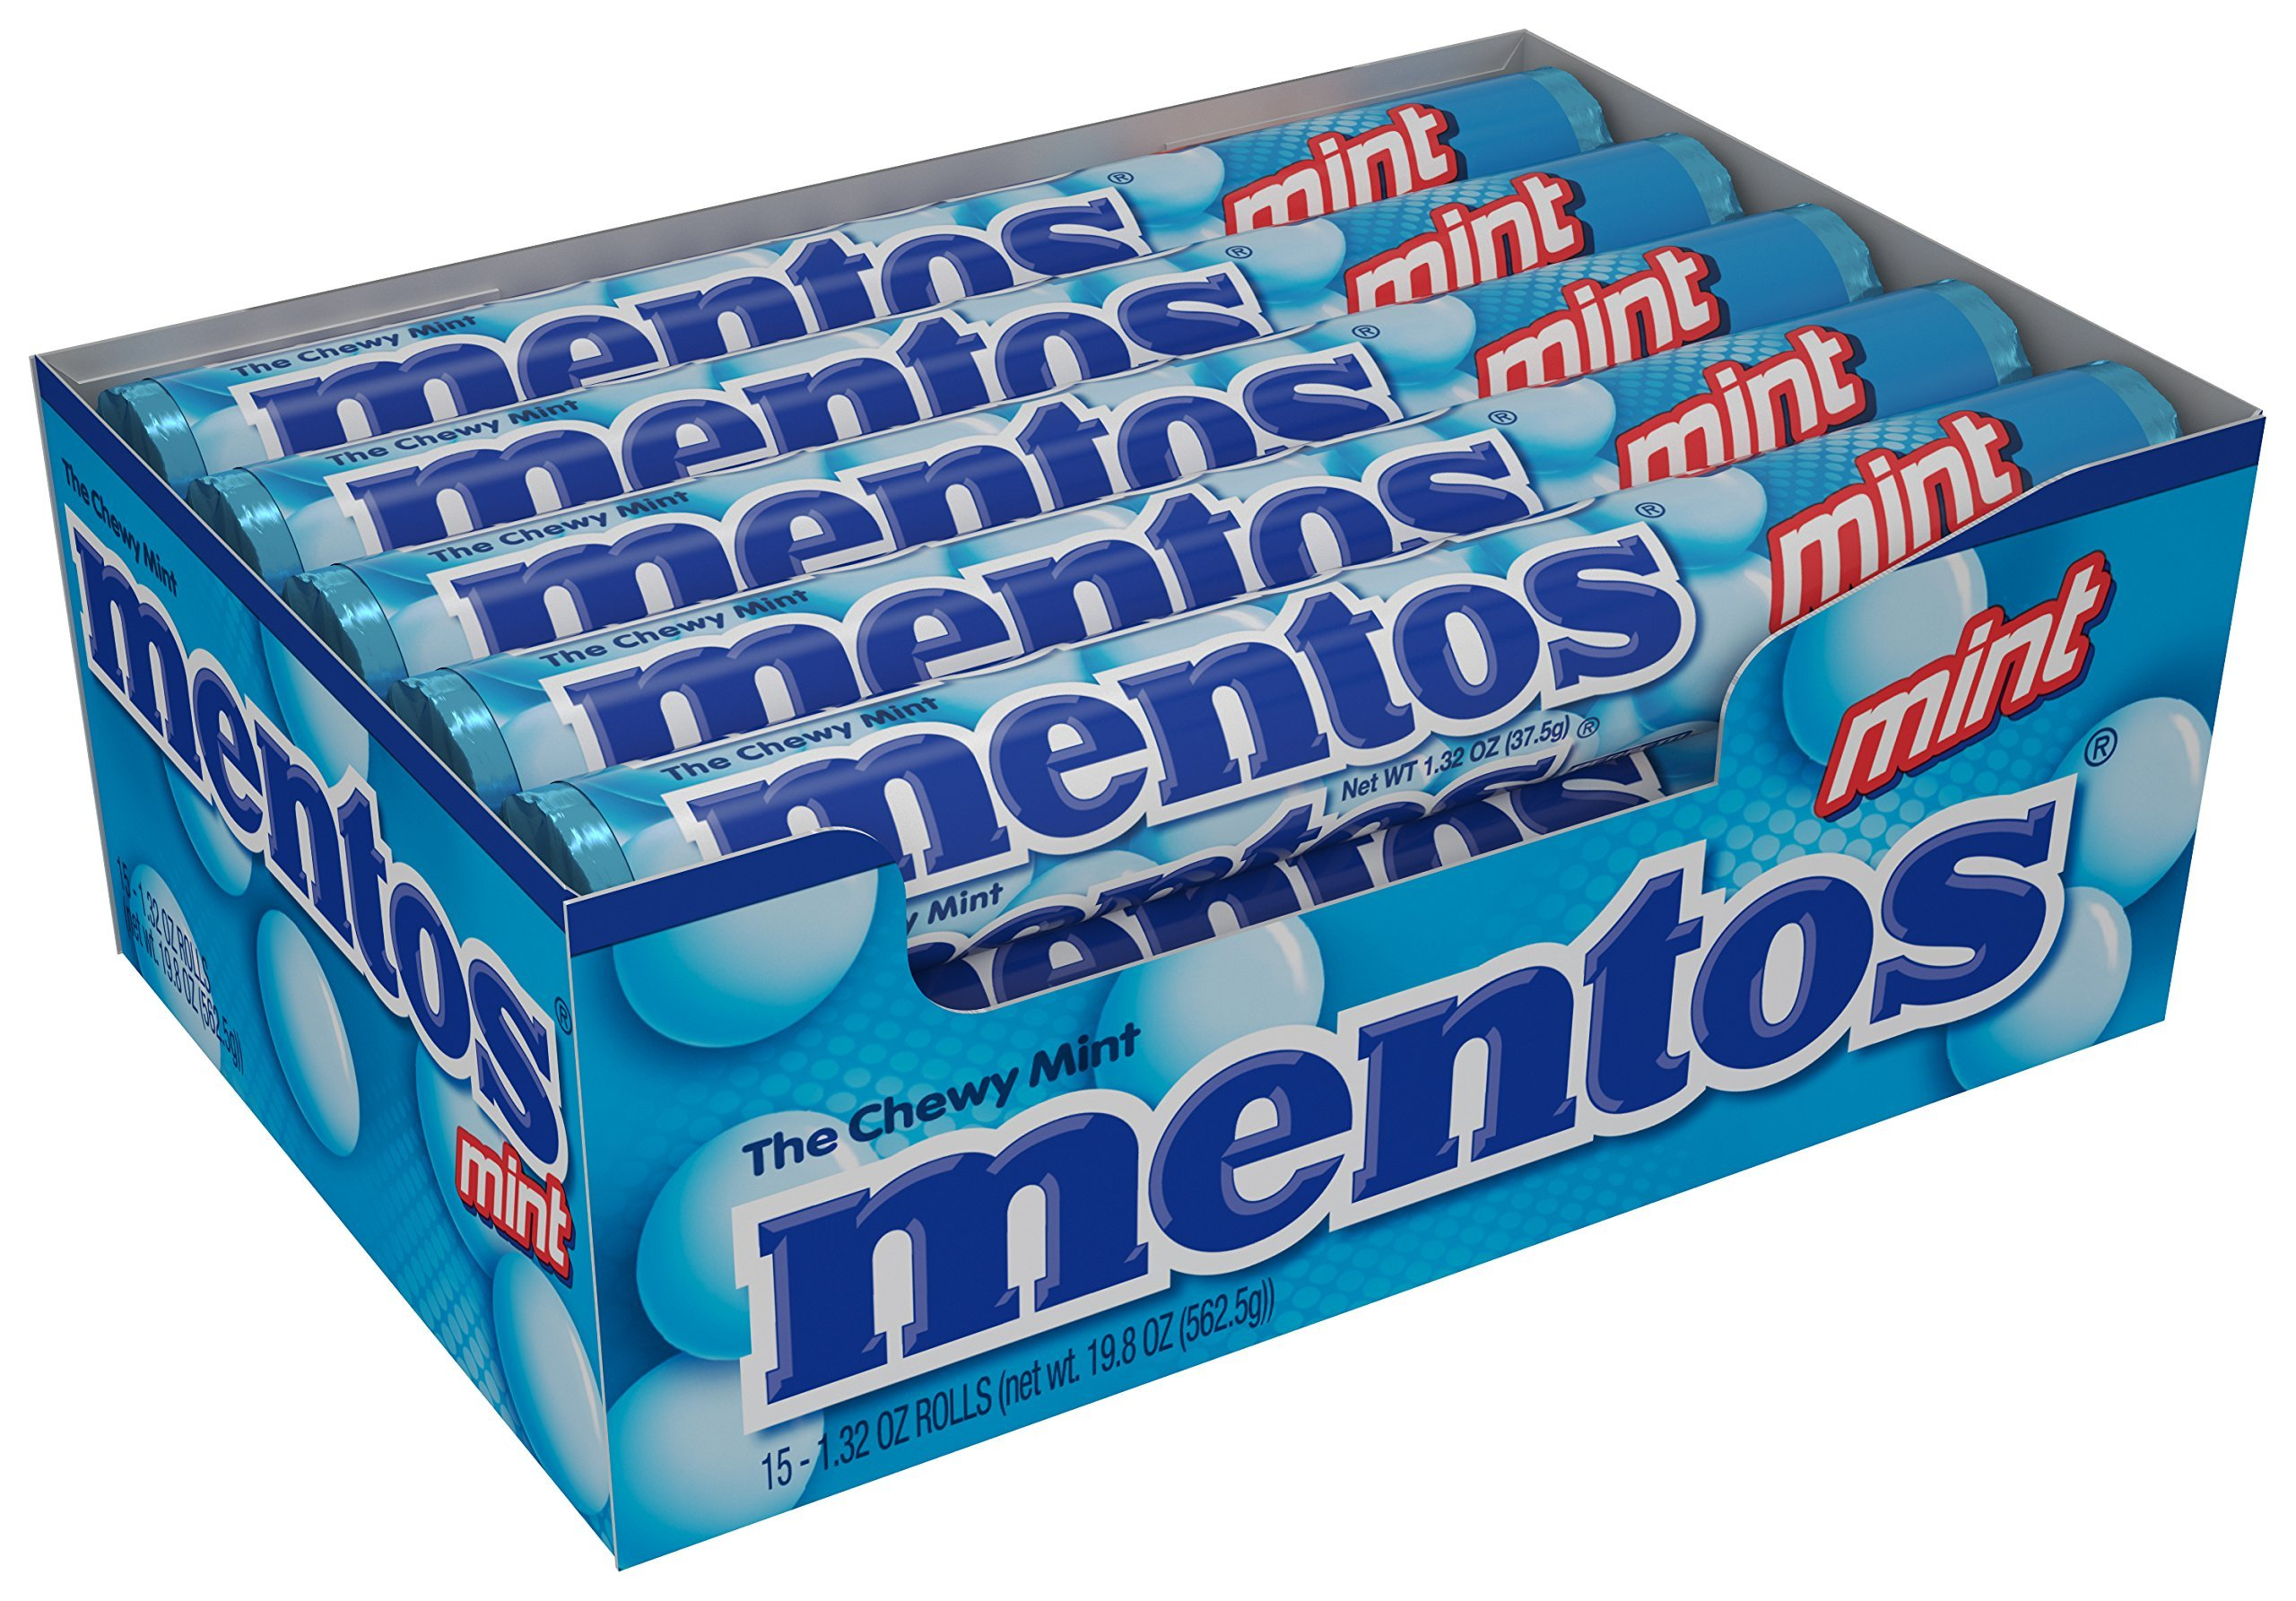 Mentos Chewy Mint Candy Roll, Mint, Easter Basket Candy, 1.32 ounce/14 Pieces (Pack of 15)